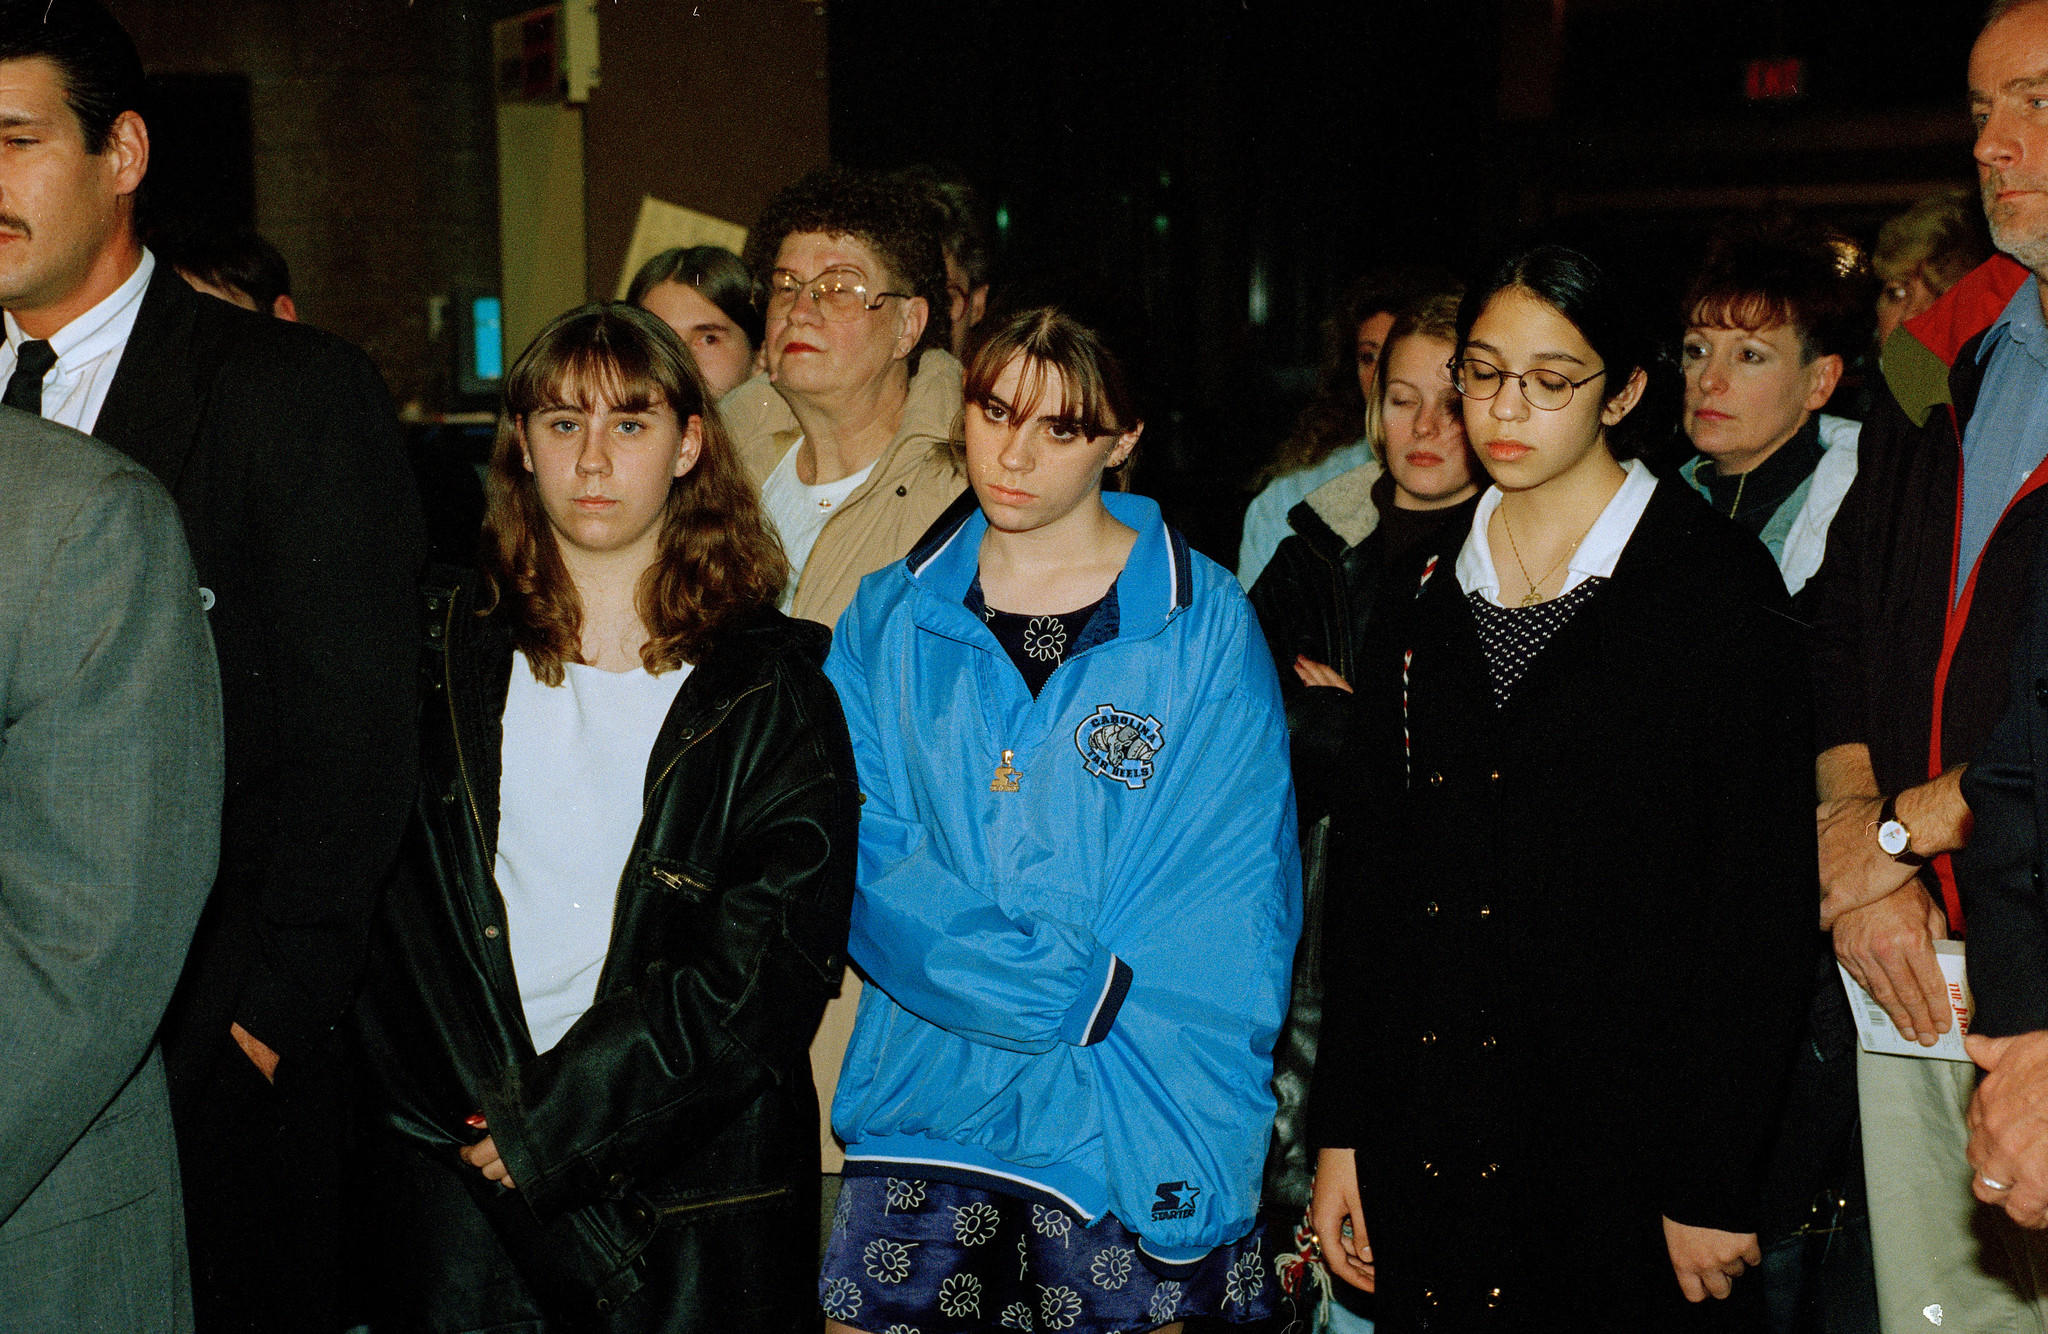 Sarah Sanaghan, 13, center in bright blue jacket, stands as someone else talks to reporters on Nov. 4, 1997 after a Will County jury convicted Richard Devon in the hit-and-run that injured her and killed her twin sister, Cari, Courtney Lauer, and Sheena Acres.